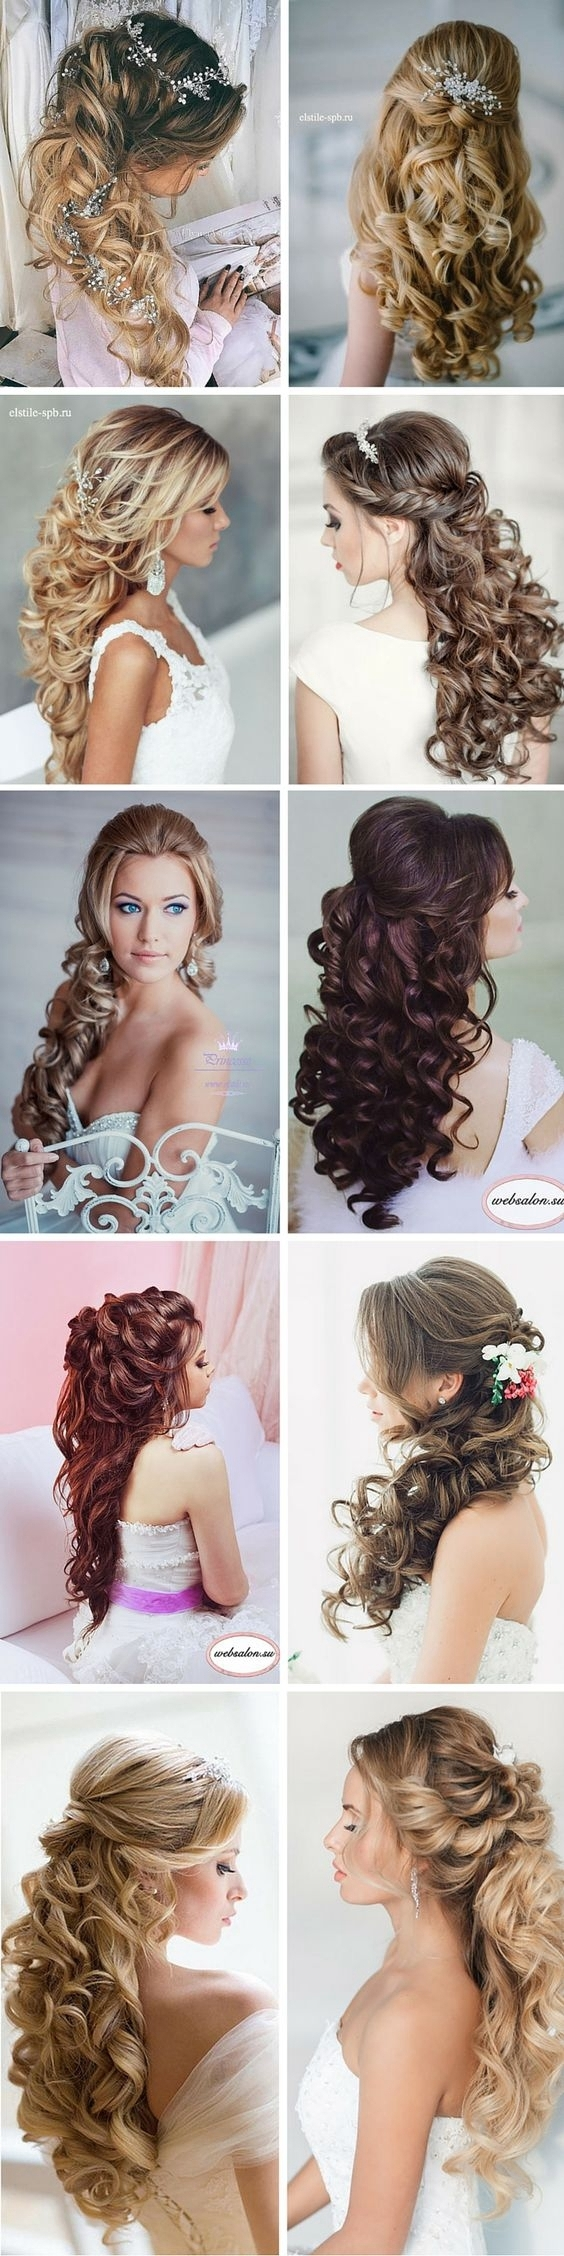 Current Wedding Hairstyles With Curls In 100+ Romantic Long Wedding Hairstyles 2018 – Curls, Half Up, Updos (View 7 of 15)